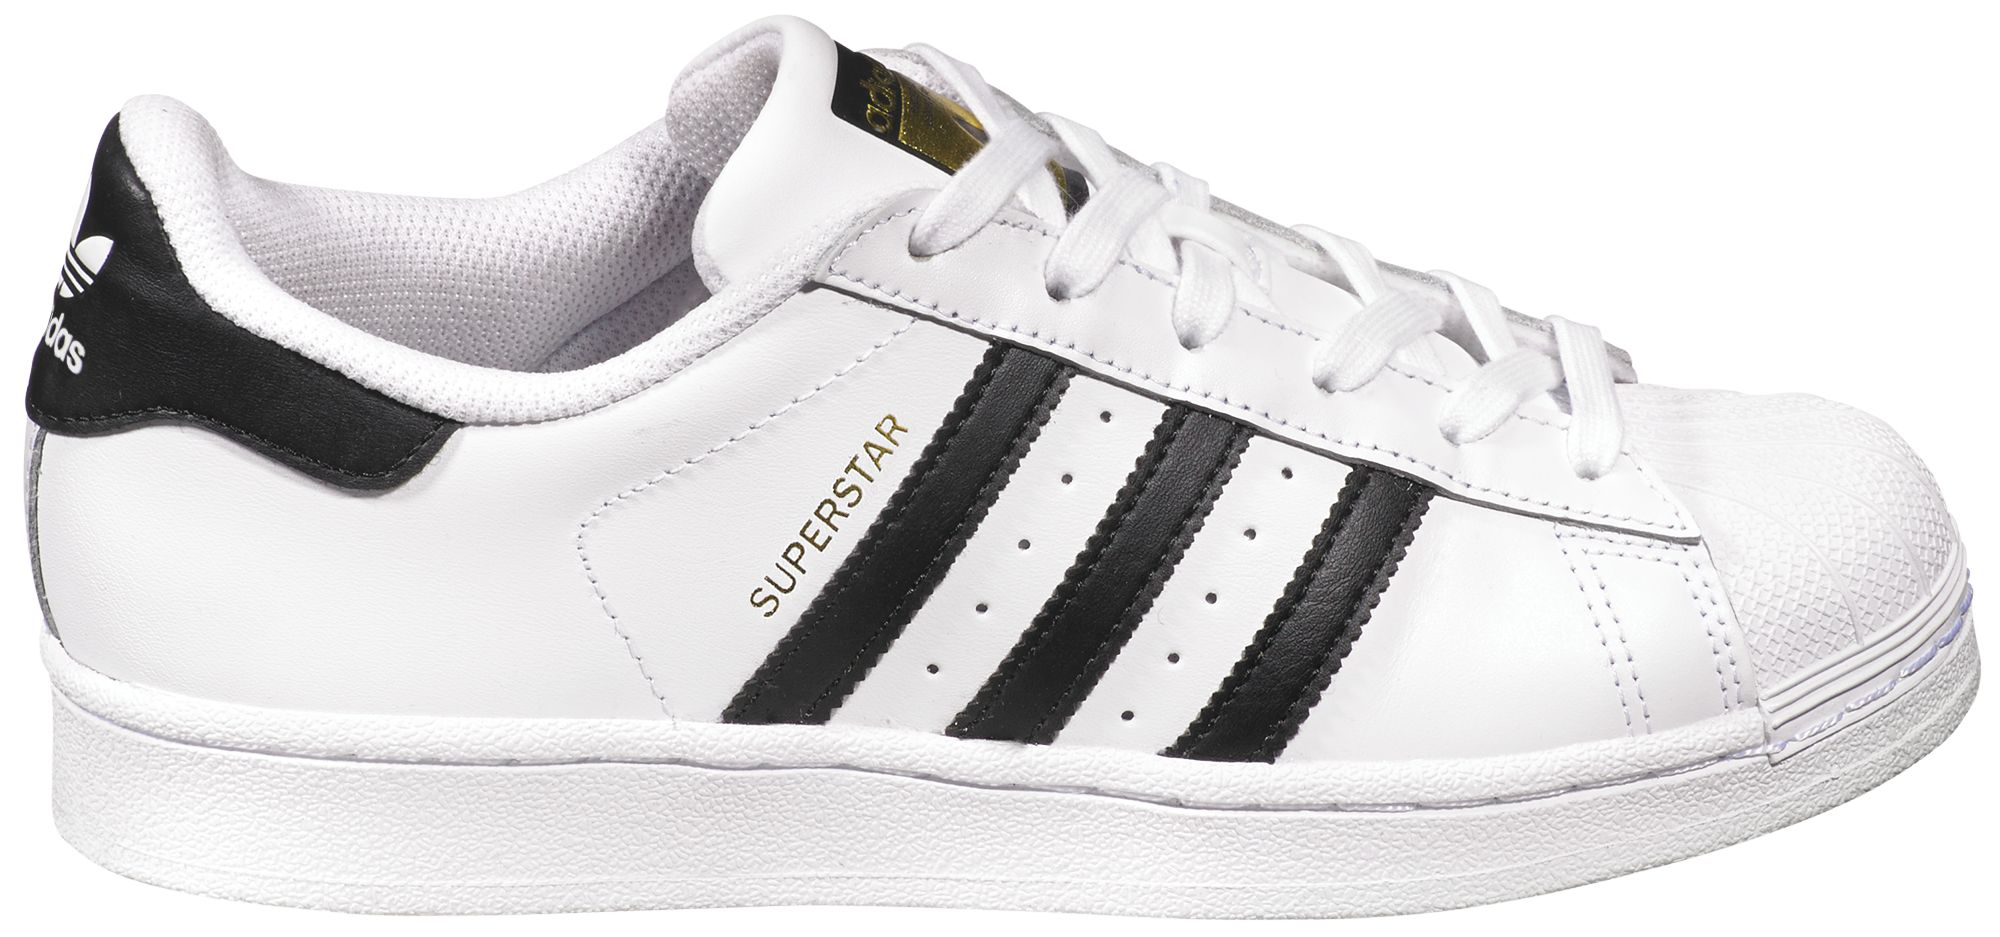 gumtree la formateurs leather white adidas uJcTlF513K